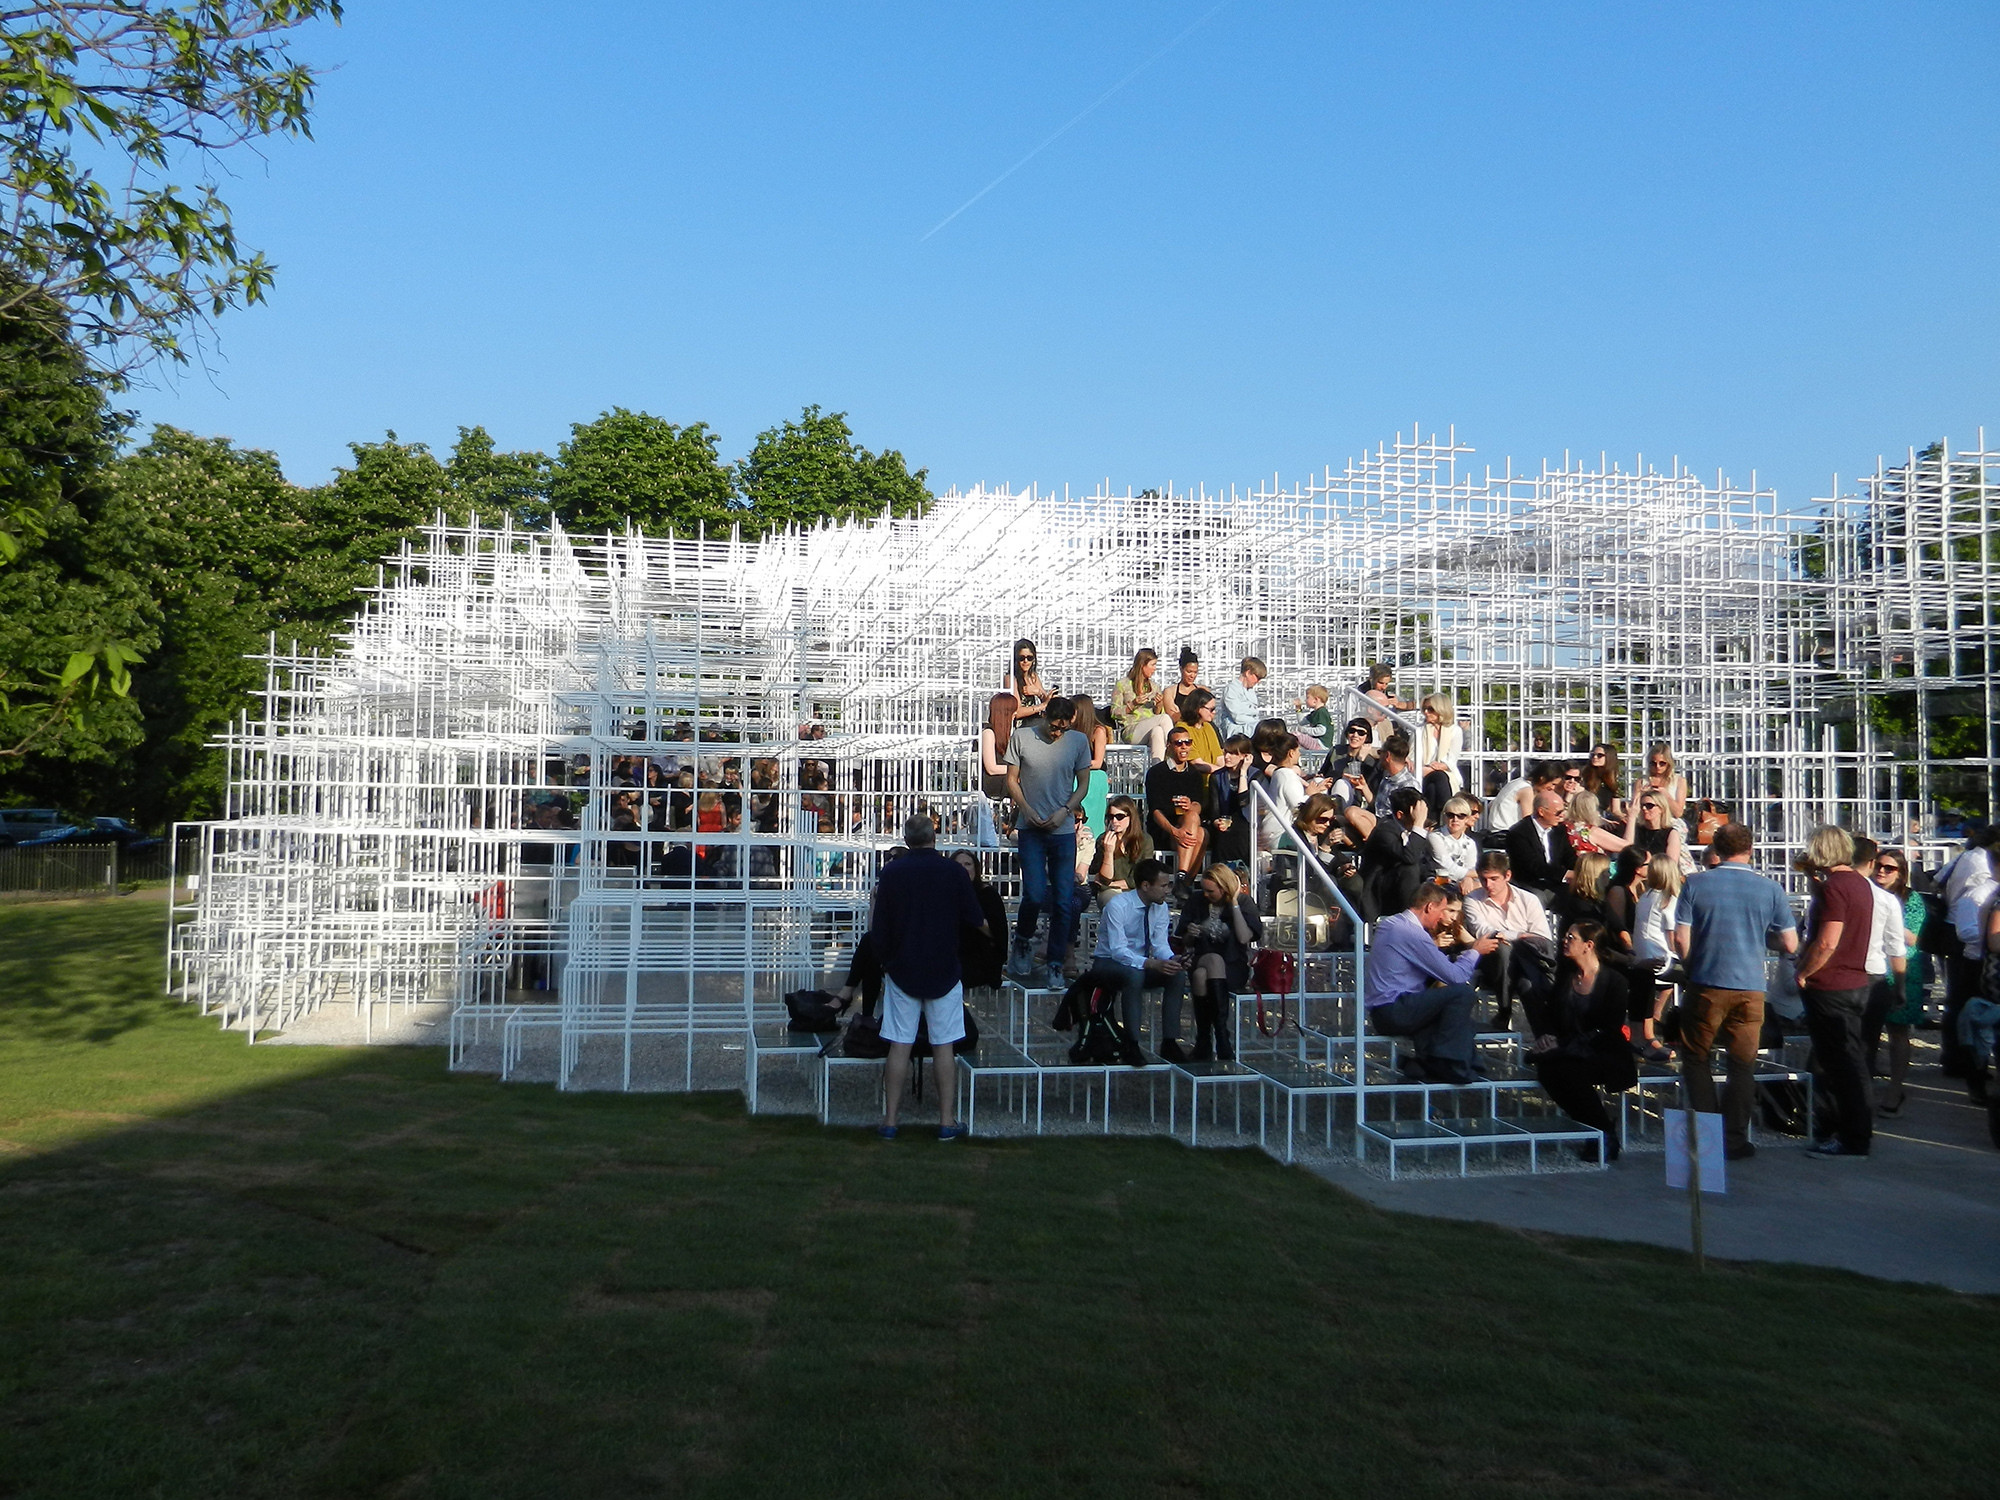 Fujimoto's Serpentine Pavilion Receives High Praise from Critics, © Daniel Portilla